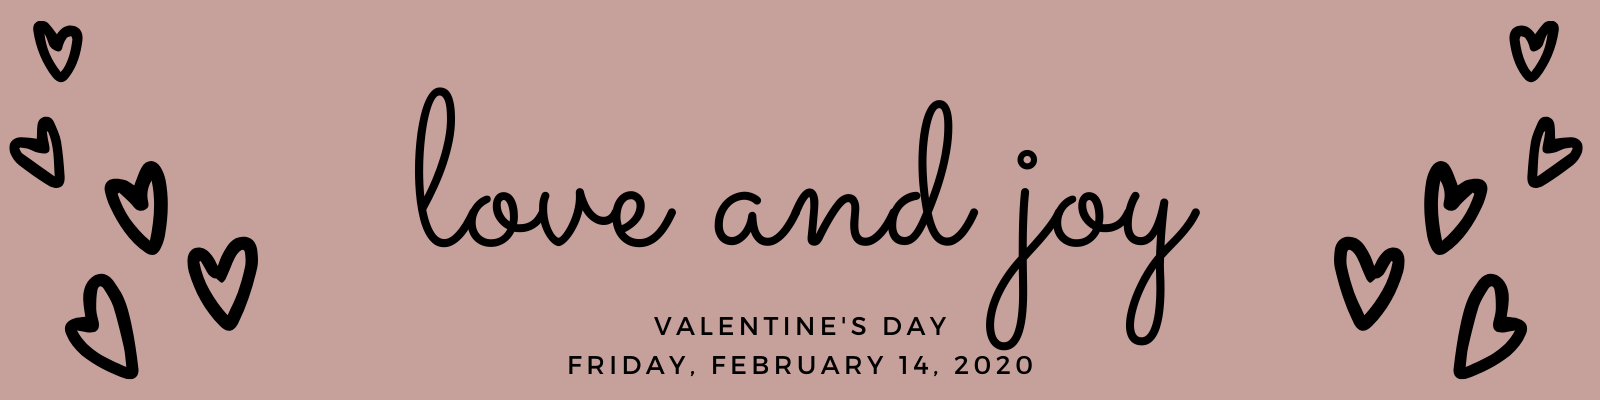 valentine's day is Friday February 14, 2020